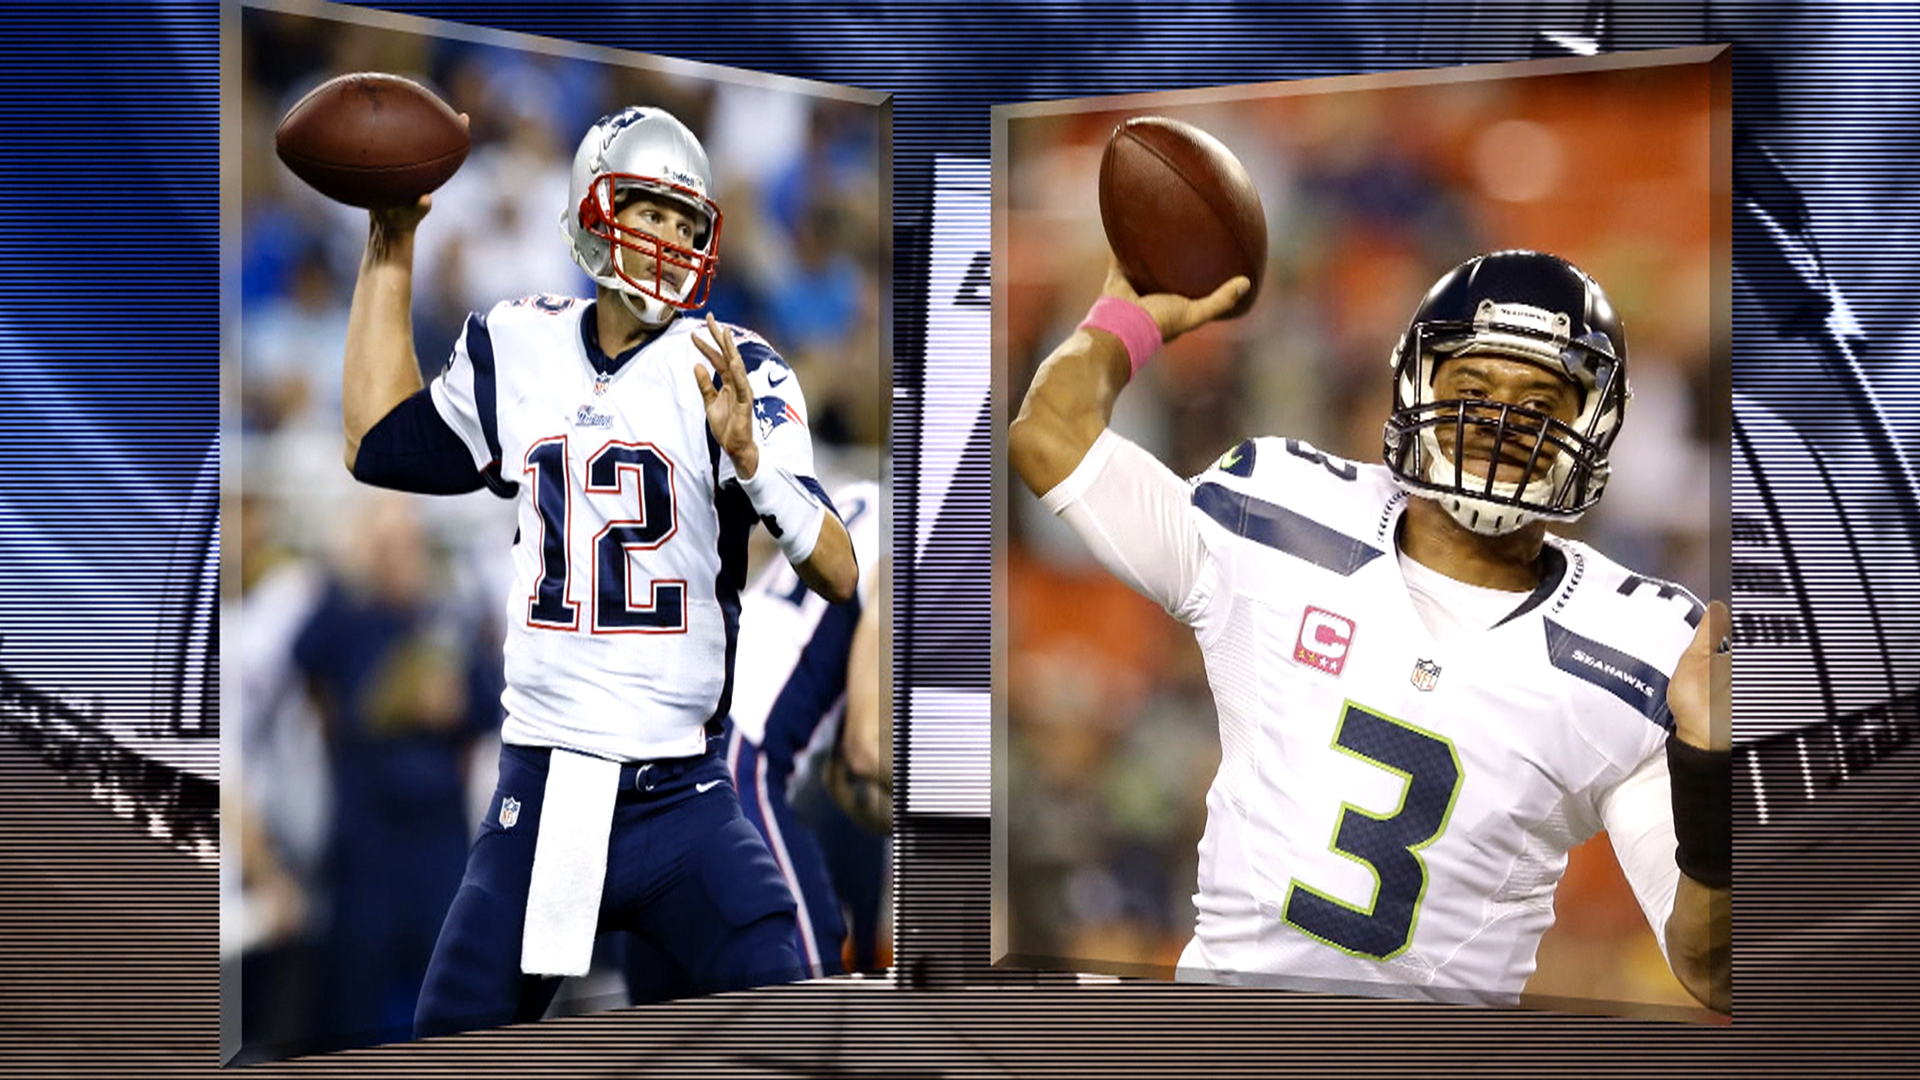 Patriots vs. Seahawks shaping up to be the best matchup in decades